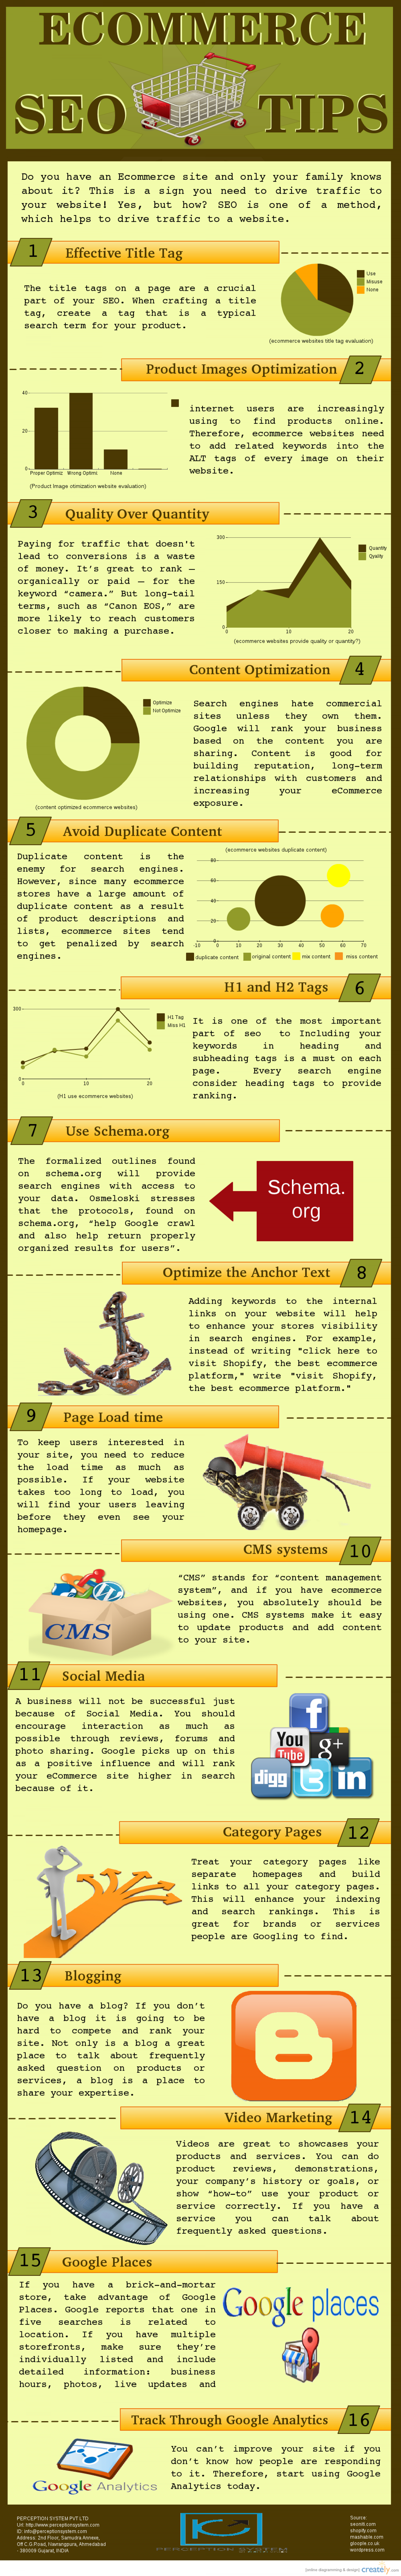 Ecommerce SEO Tips Infographic